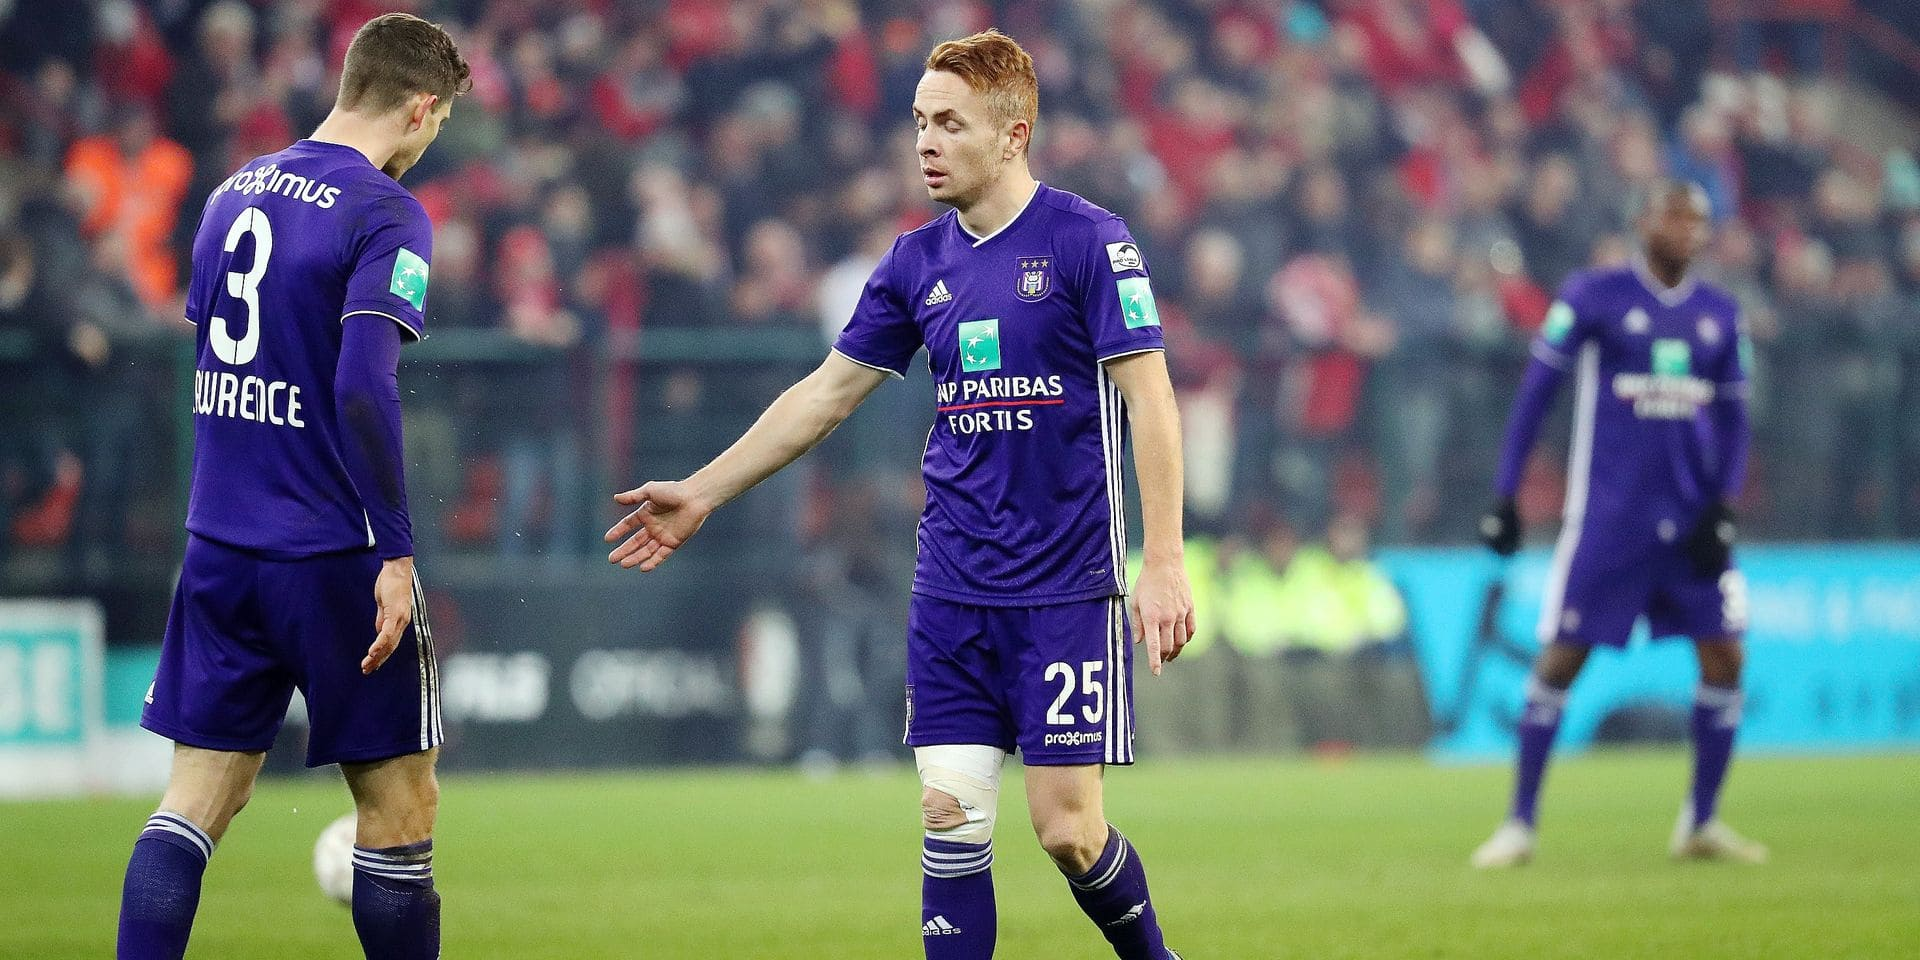 Anderlecht's Adrien Trebel looks dejected after a soccer game between Standard de Liege and RSC Anderlecht, Sunday 03 February 2019 in Liege, on the 24th of the 'Jupiler Pro League' Belgian soccer championship season 2018-2019. BELGA PHOTO VIRGINIE LEFOUR